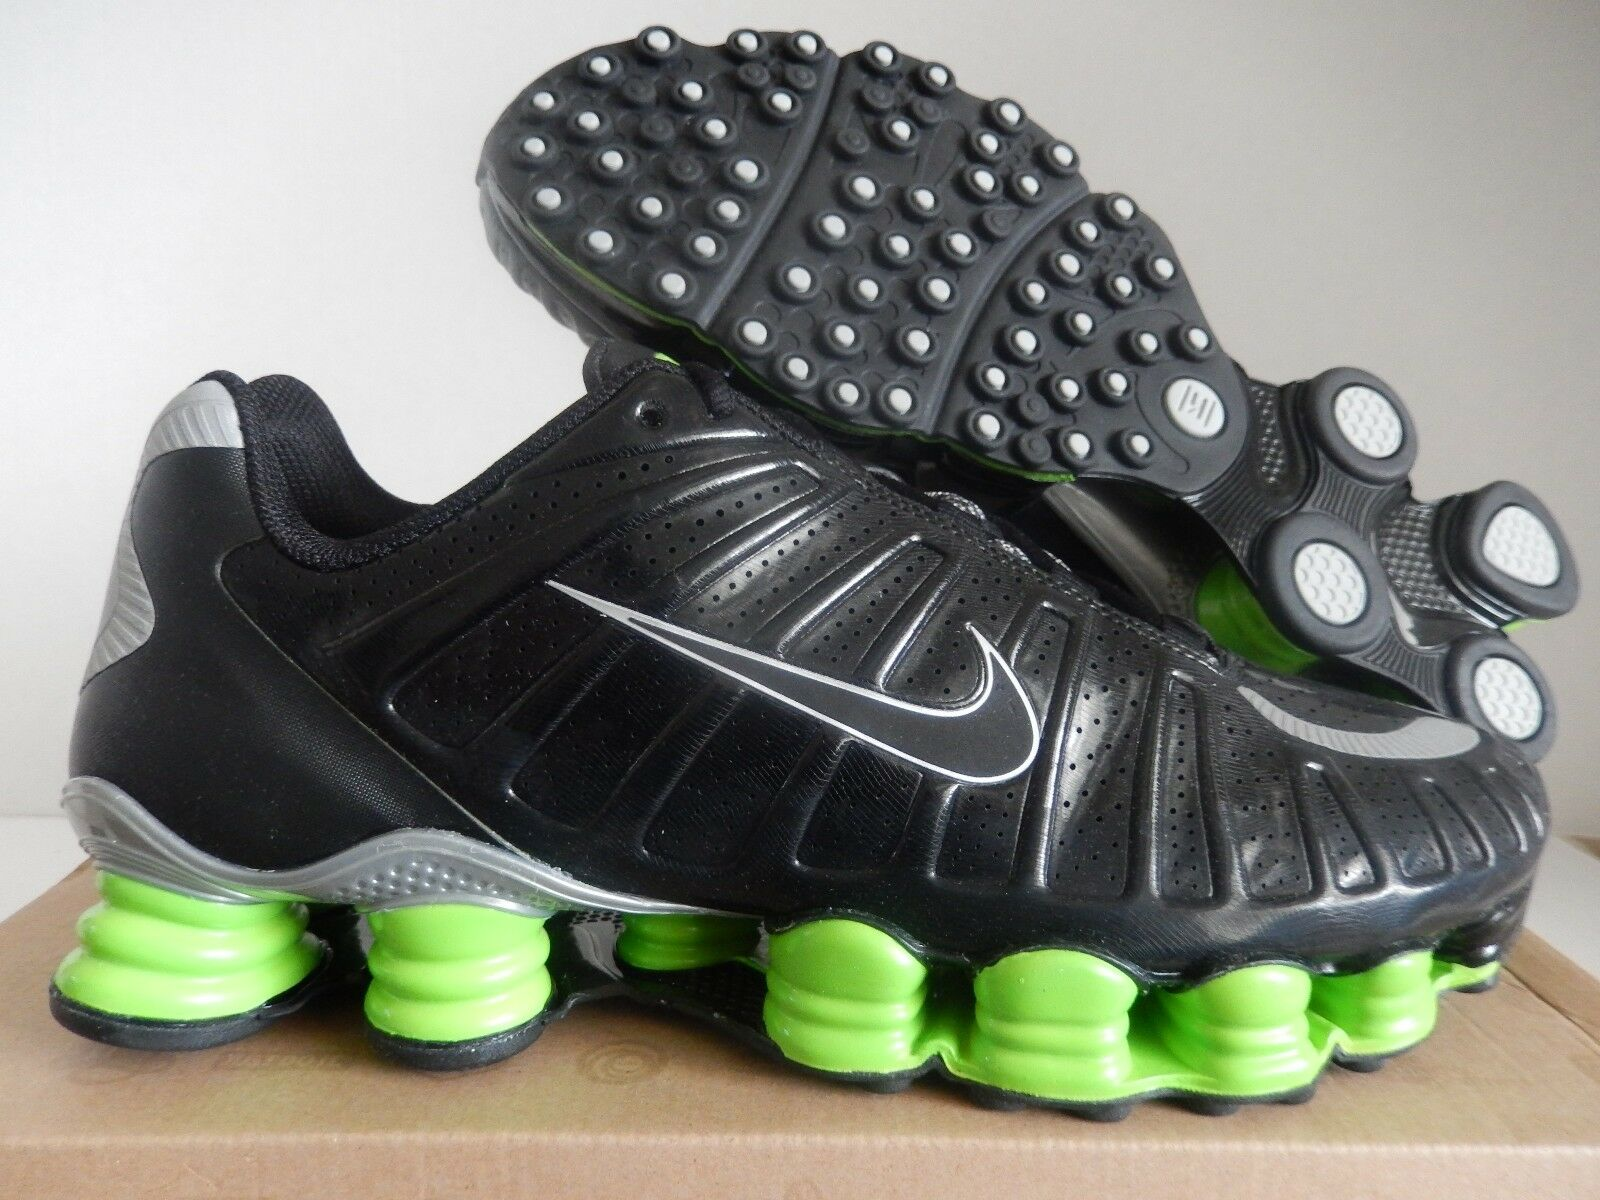 SHOX TOTAL TLX SHOX NIKE TURBO 8.5 taille argent noir action